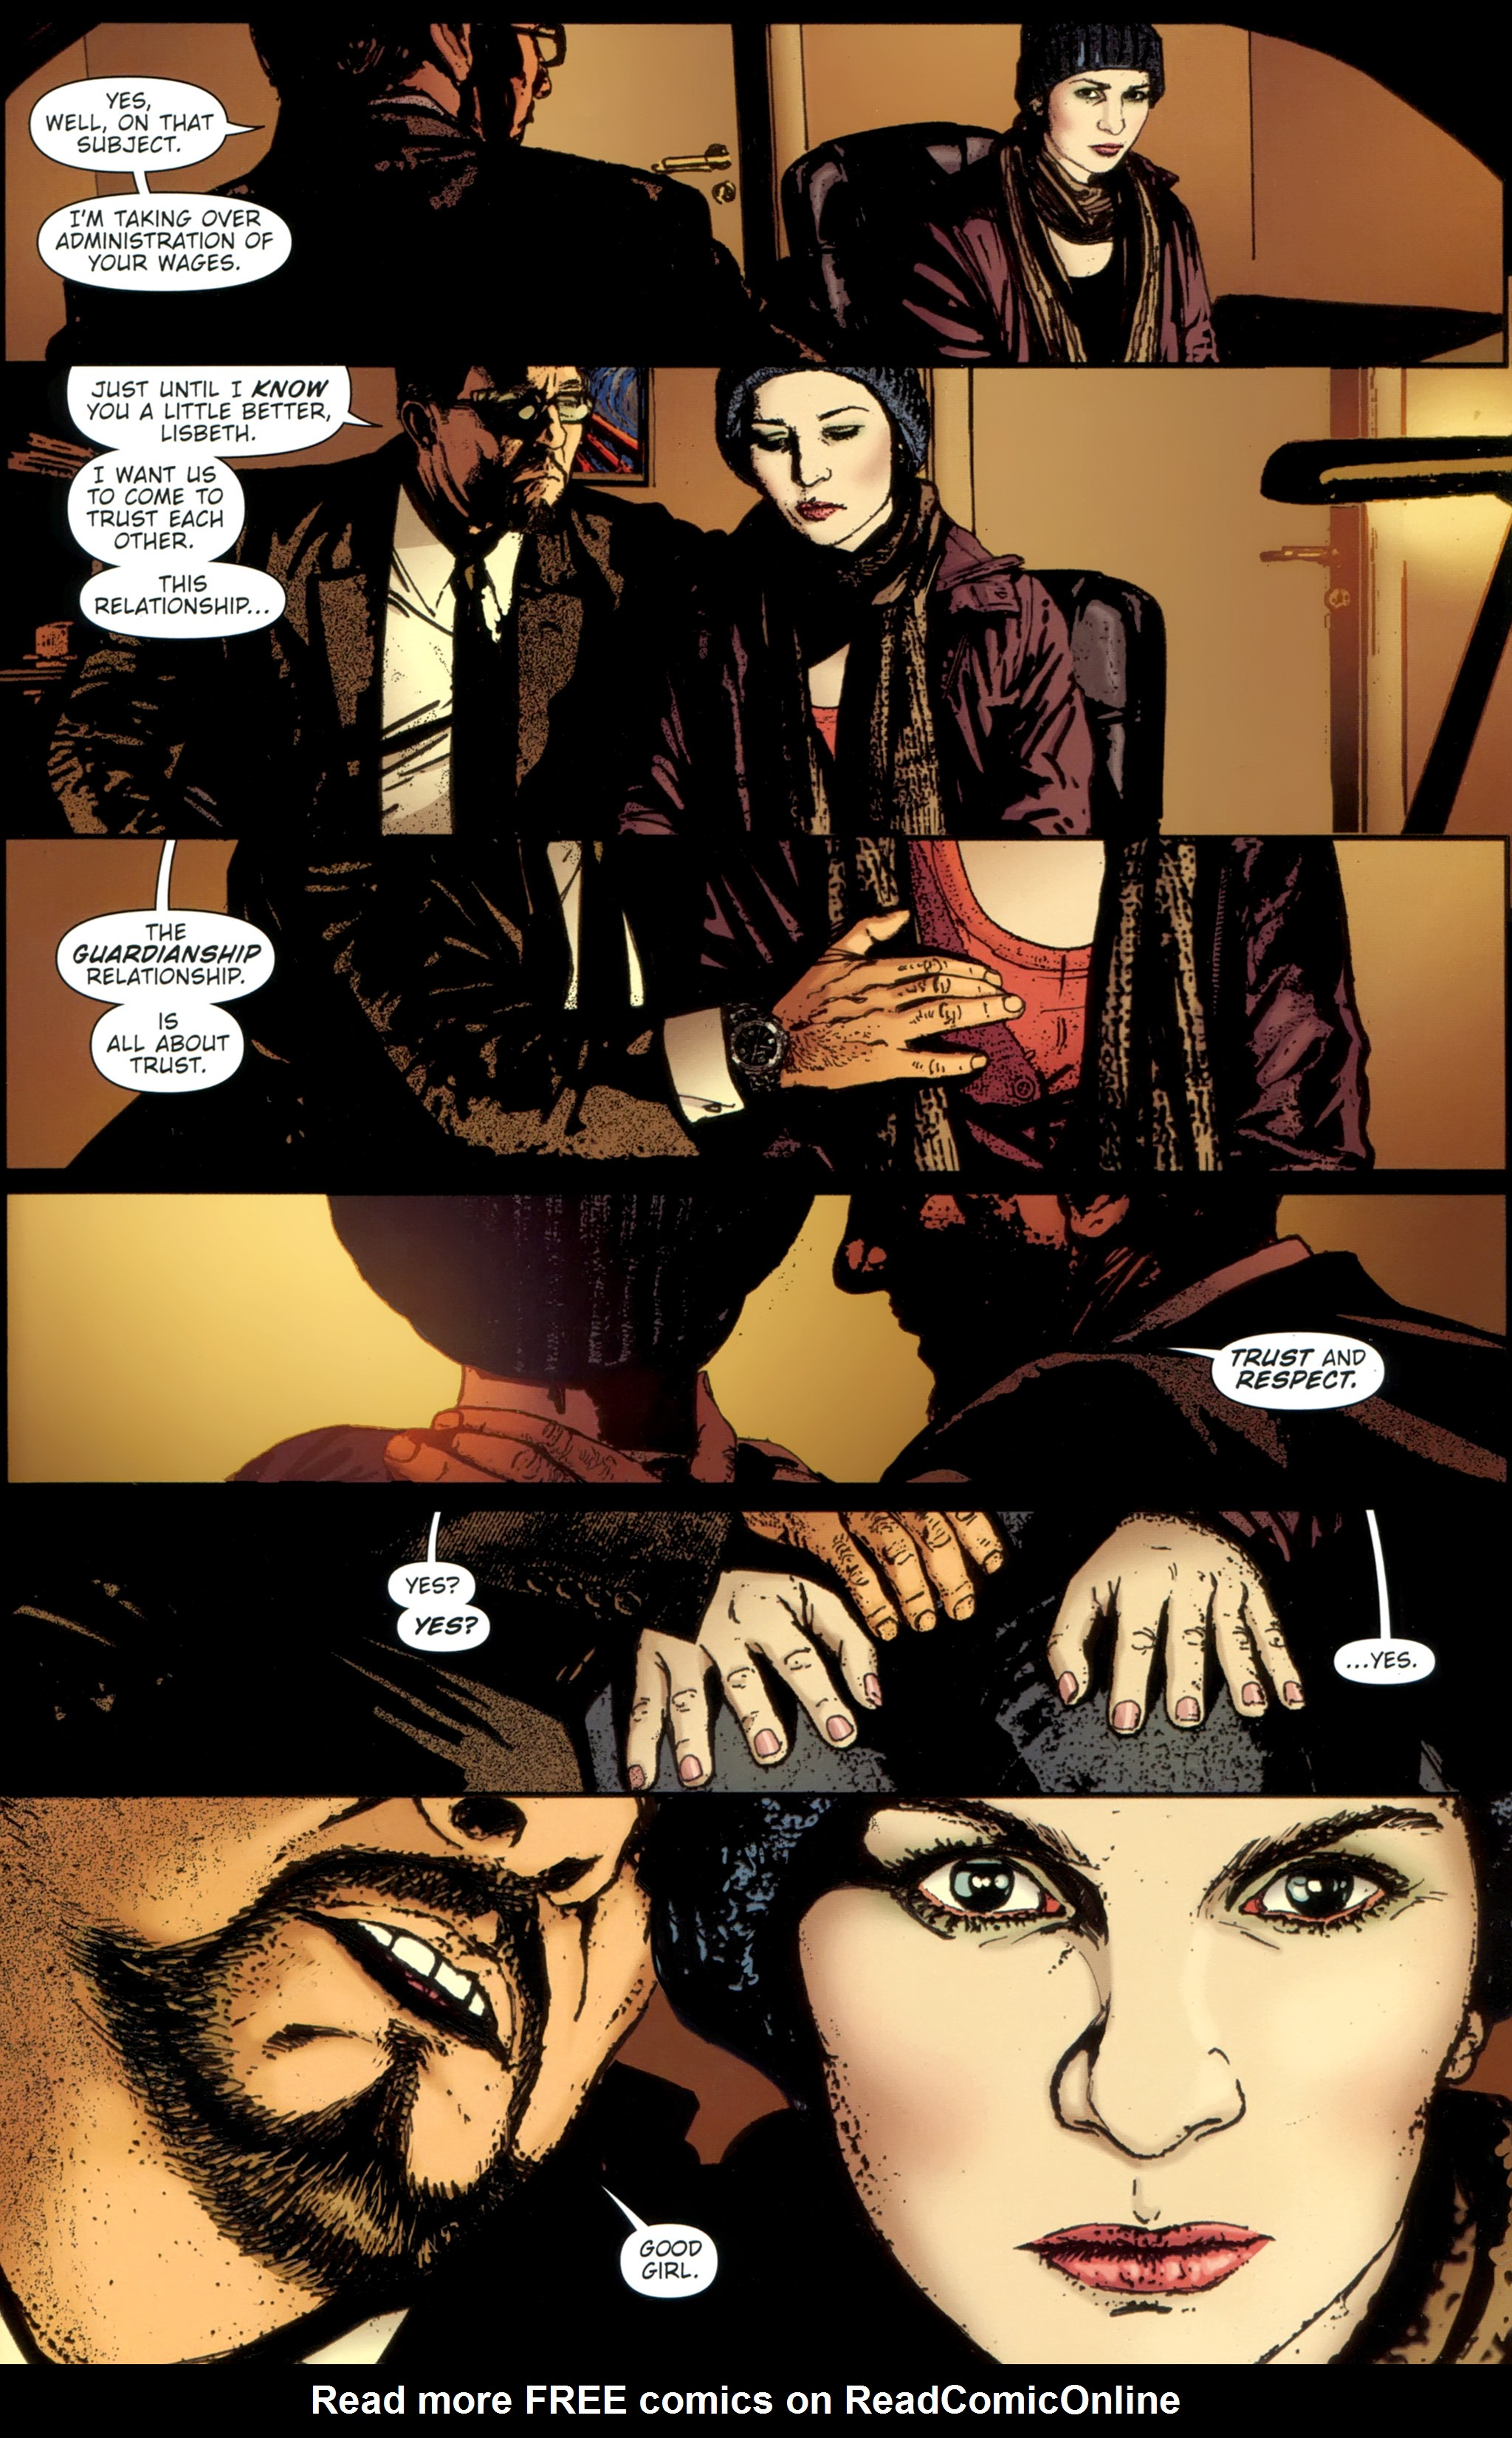 Read online The Girl With the Dragon Tattoo comic -  Issue # TPB 1 - 89